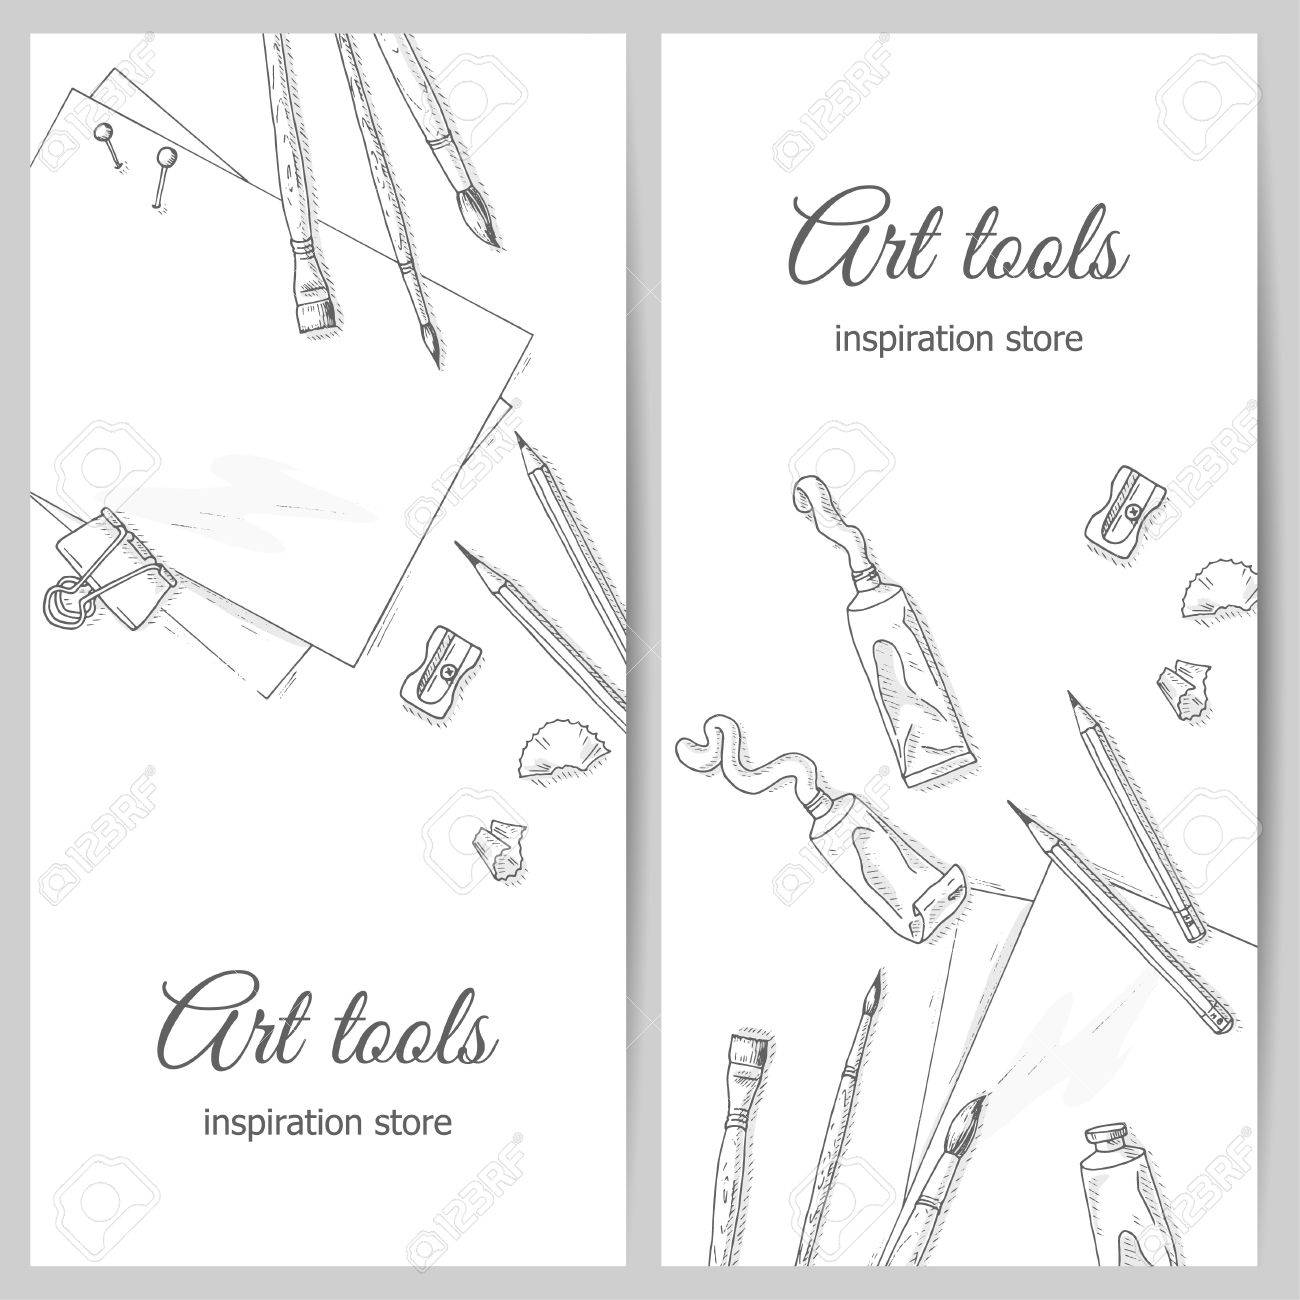 Art tools flyer artist creative quipment sketch brushes paper sheet pencil and